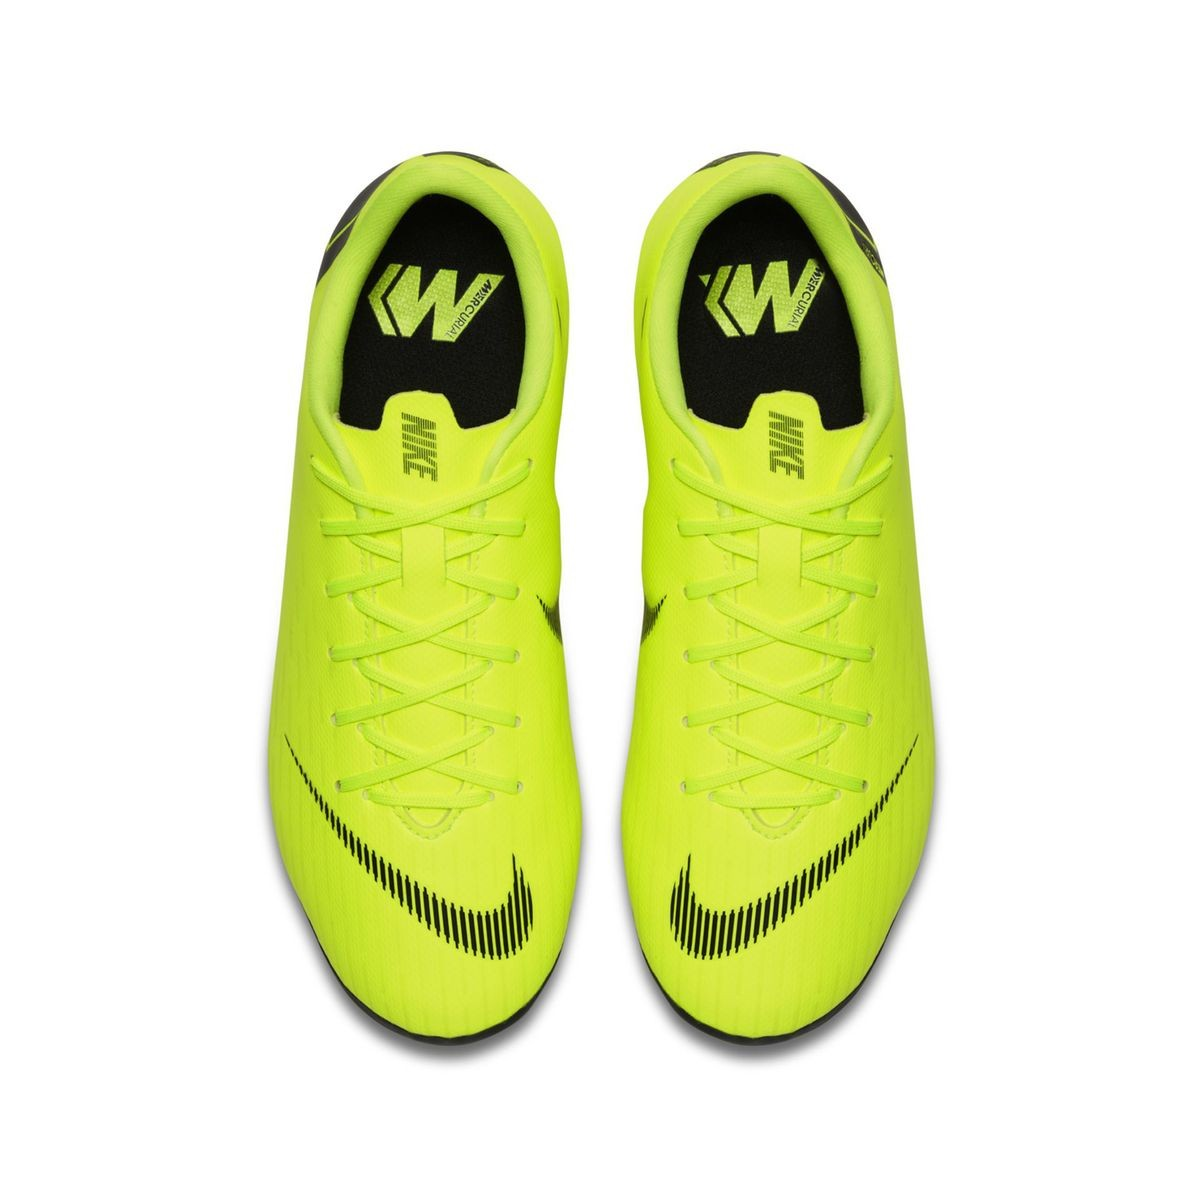 Vapor Mg Chaussures Xii Taille Football Mercurial Nike Academy UVqpzSM